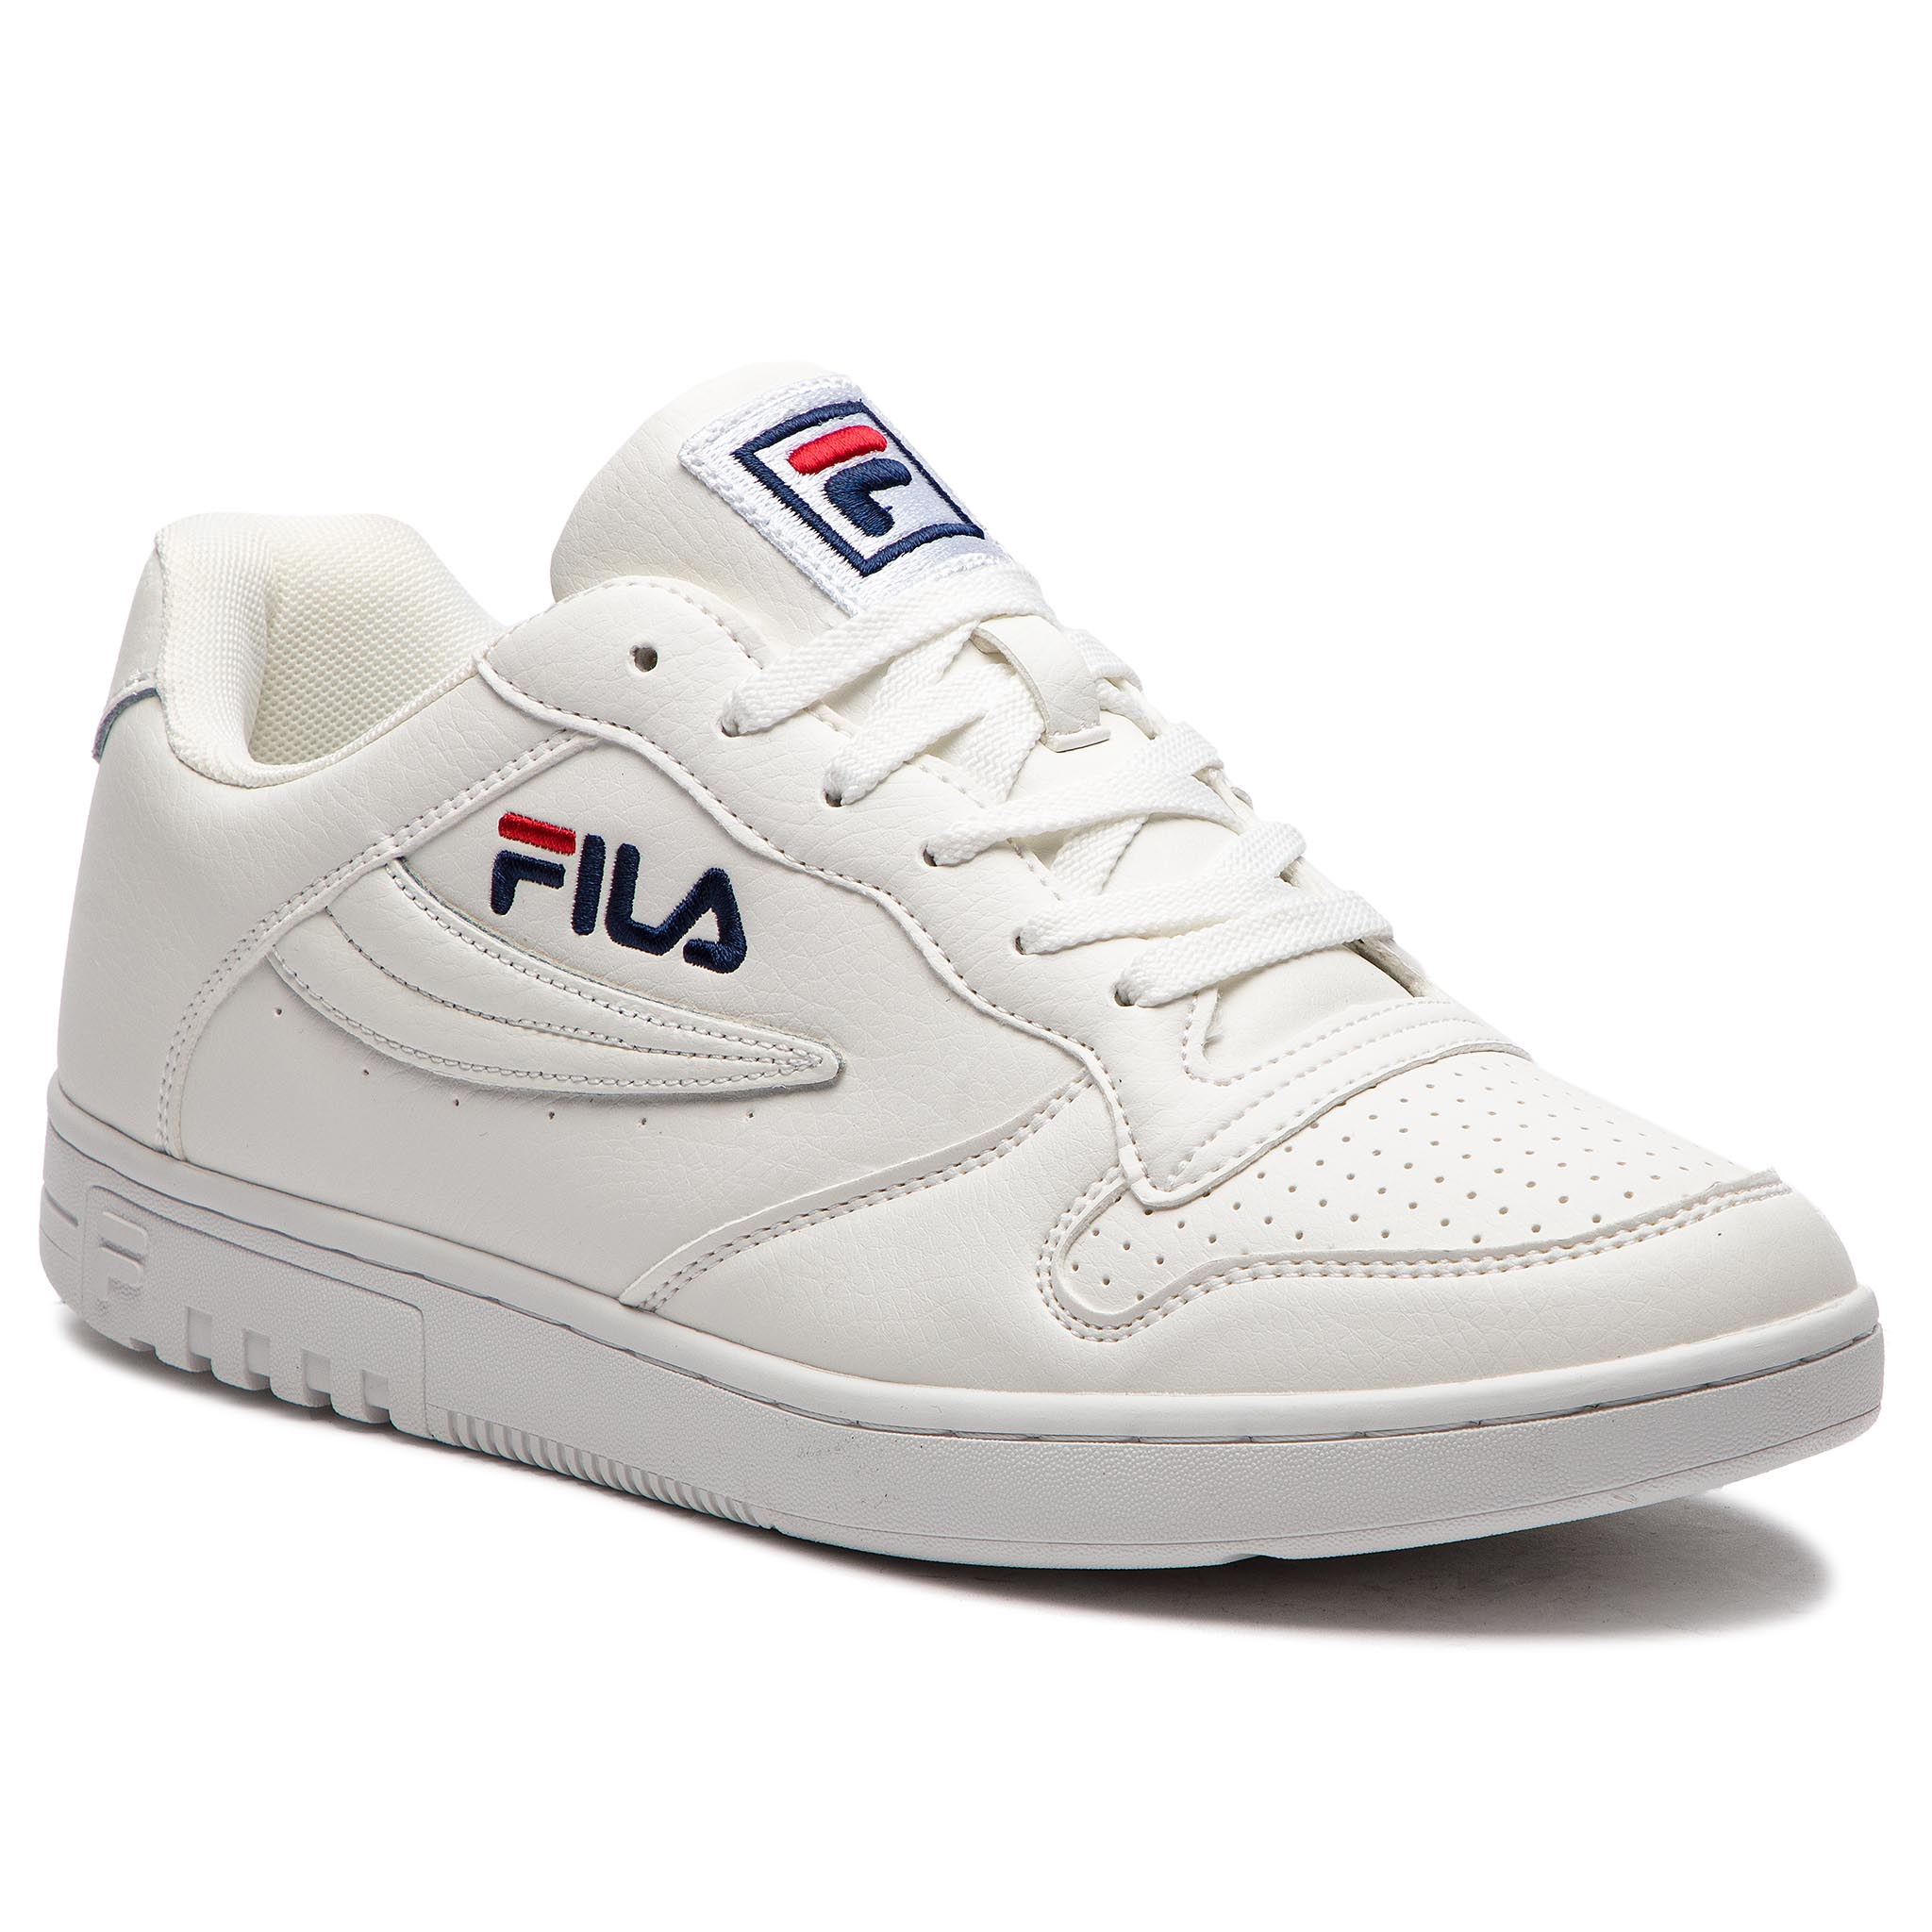 Sneakers FILA - Fx100 Low 1010260.1FG White